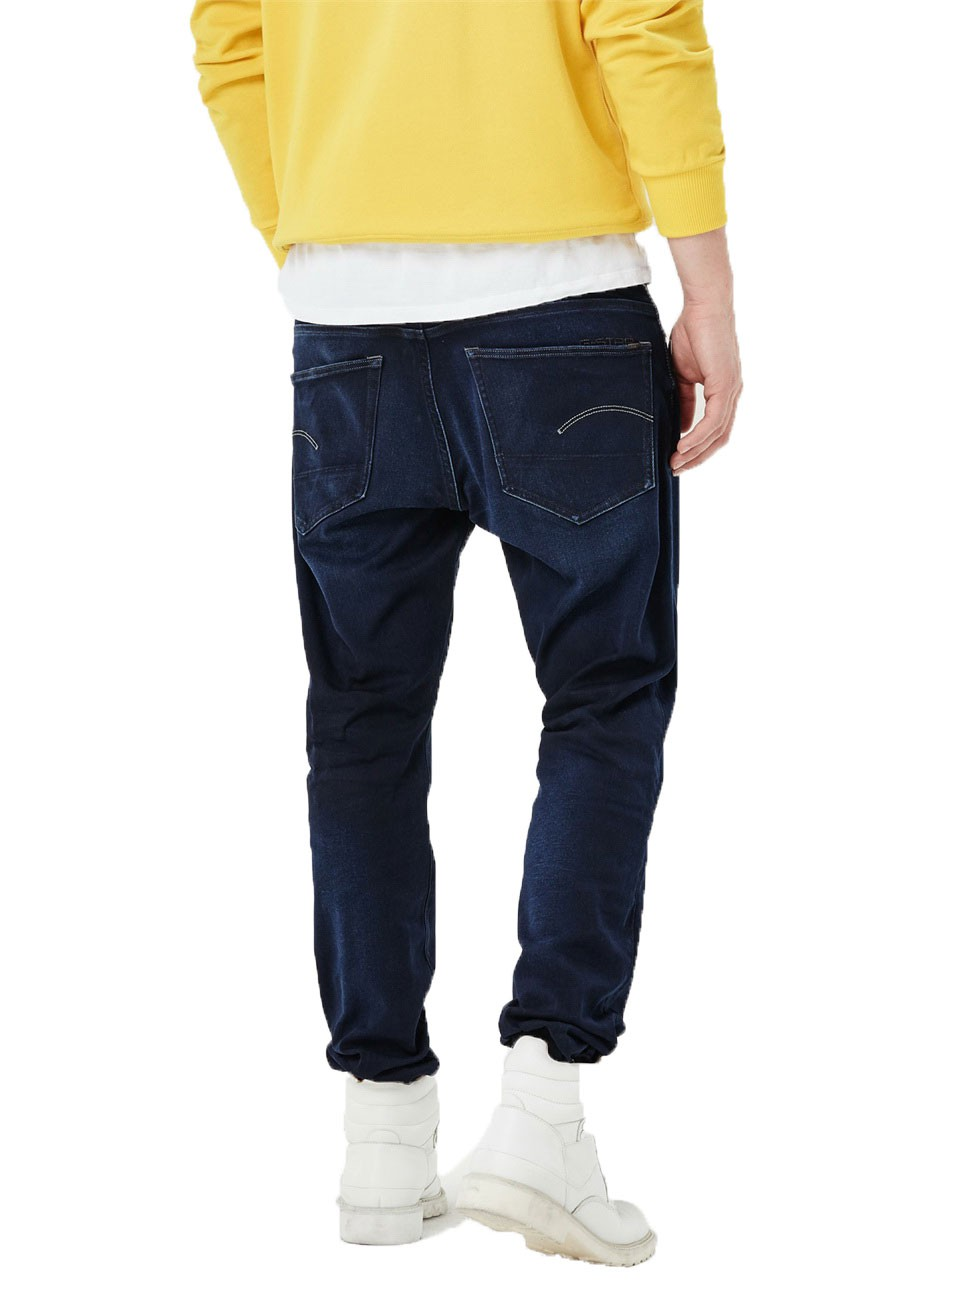 G-Star Herren Jeans 3301 Tapered Fit - Blau - Dark Aged